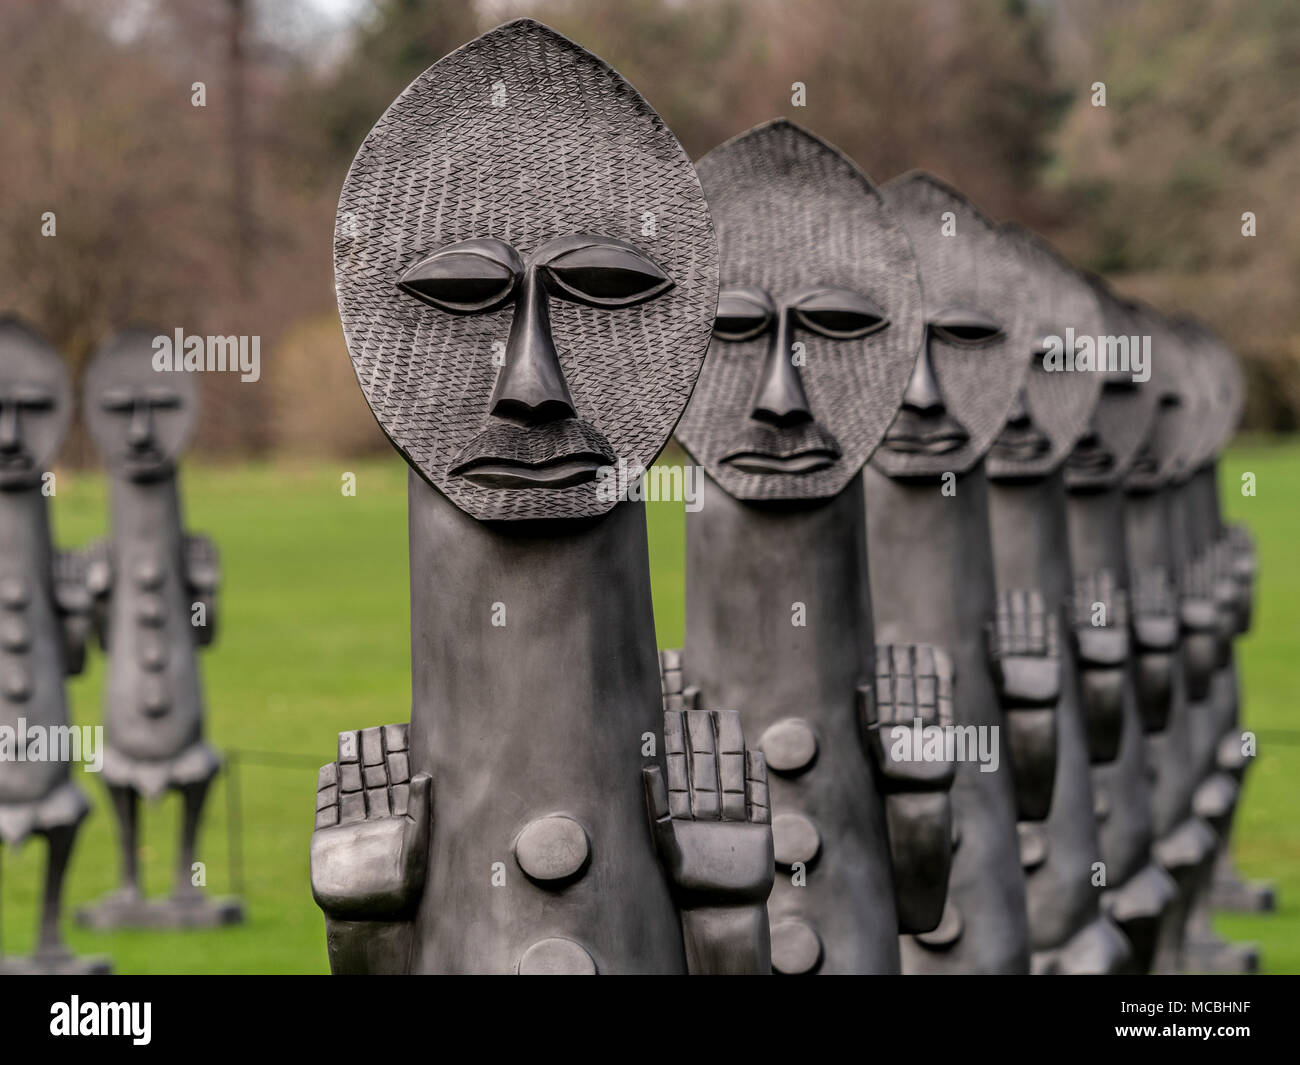 'Black and Blue: The invisible man and the mask of blackness 2016-2017' fibreglass and graphite sculptures by Zak Ove at Yorkshire Sculpture Park, UK. - Stock Image